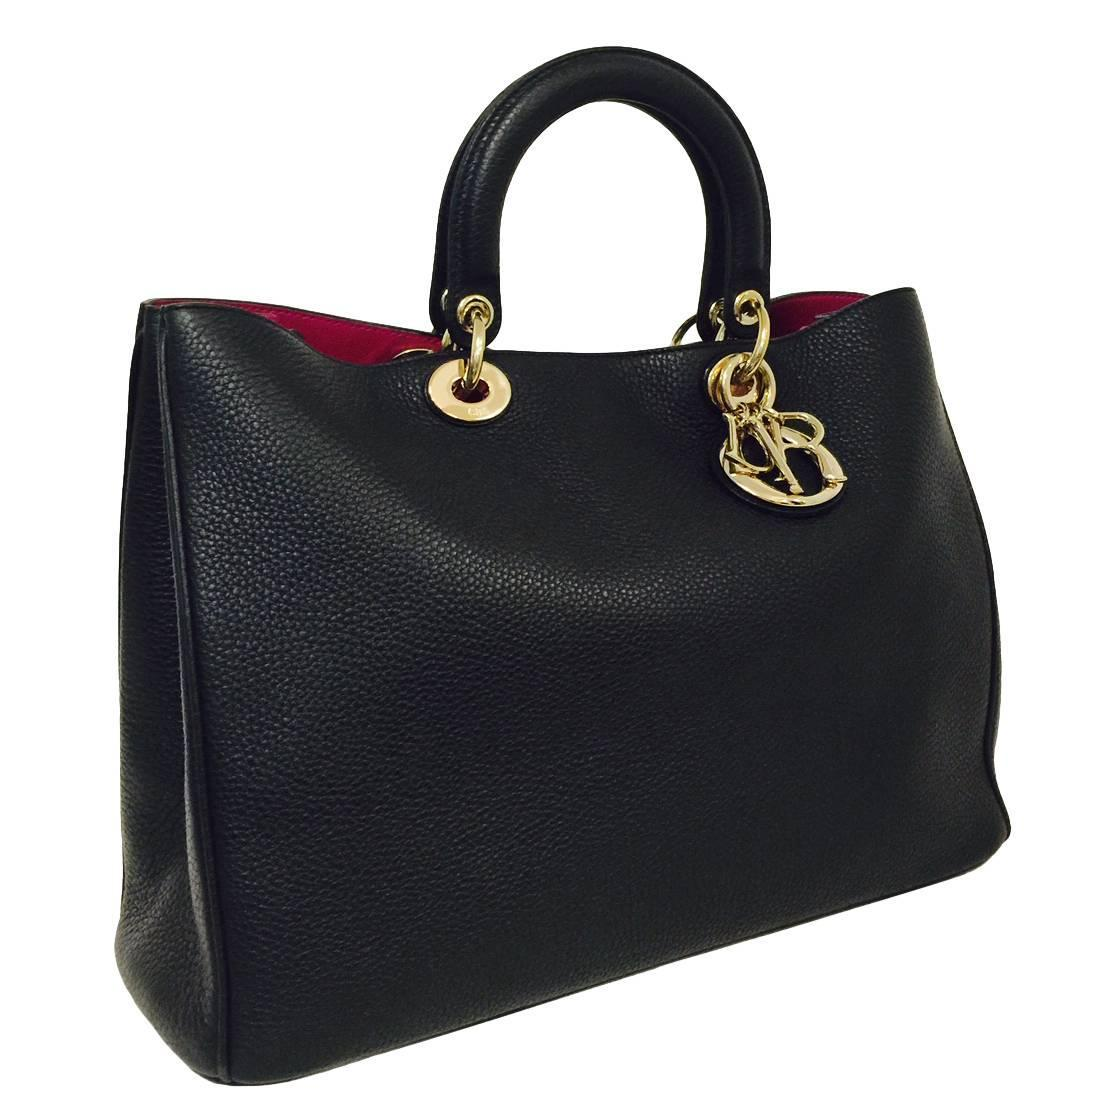 Christian Dior Large Lady Dior Diorissimo Tote In Black